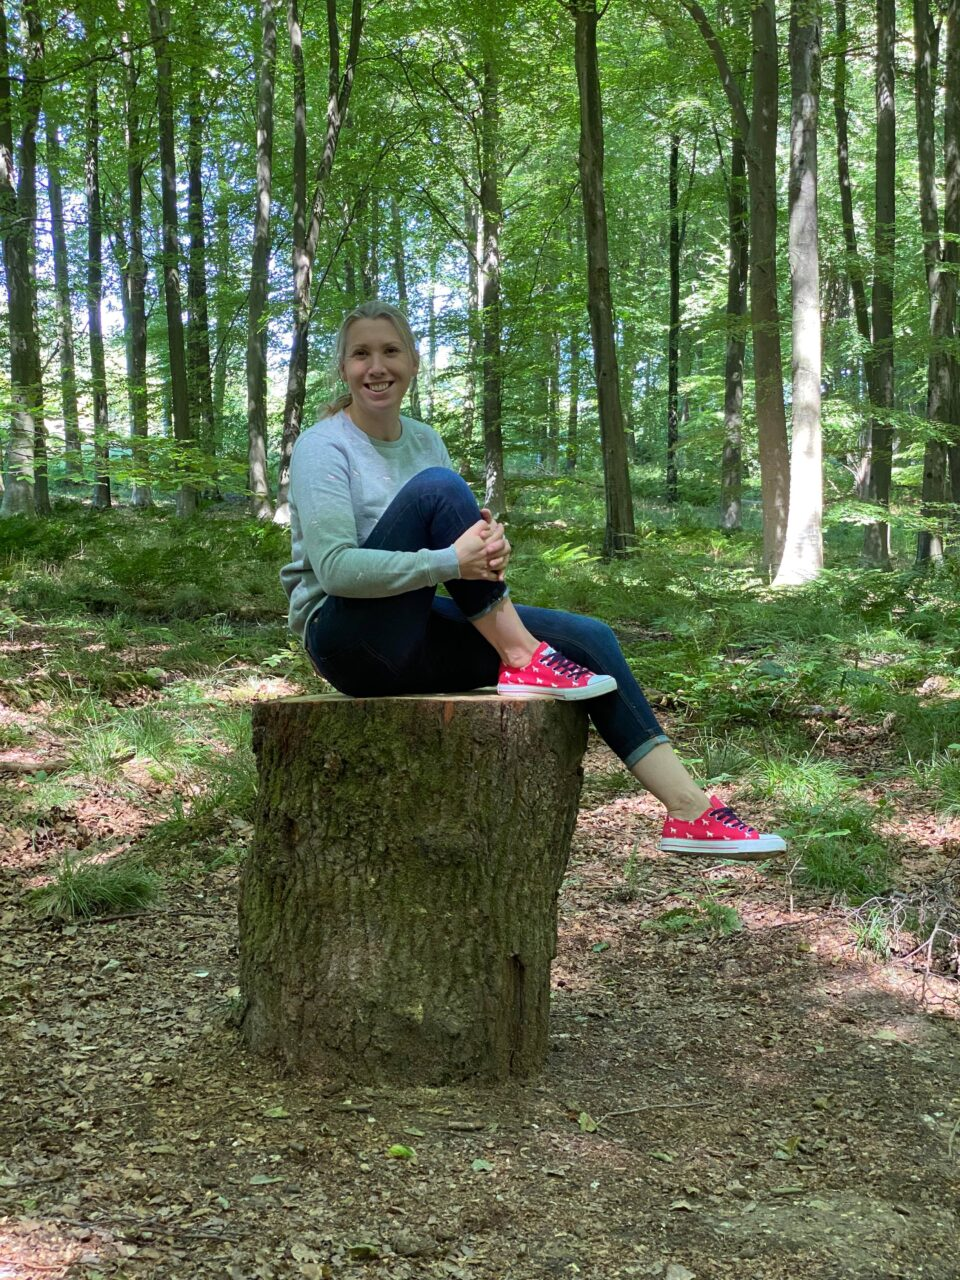 me sitting on a log in the woods wearing my Rydale clothing